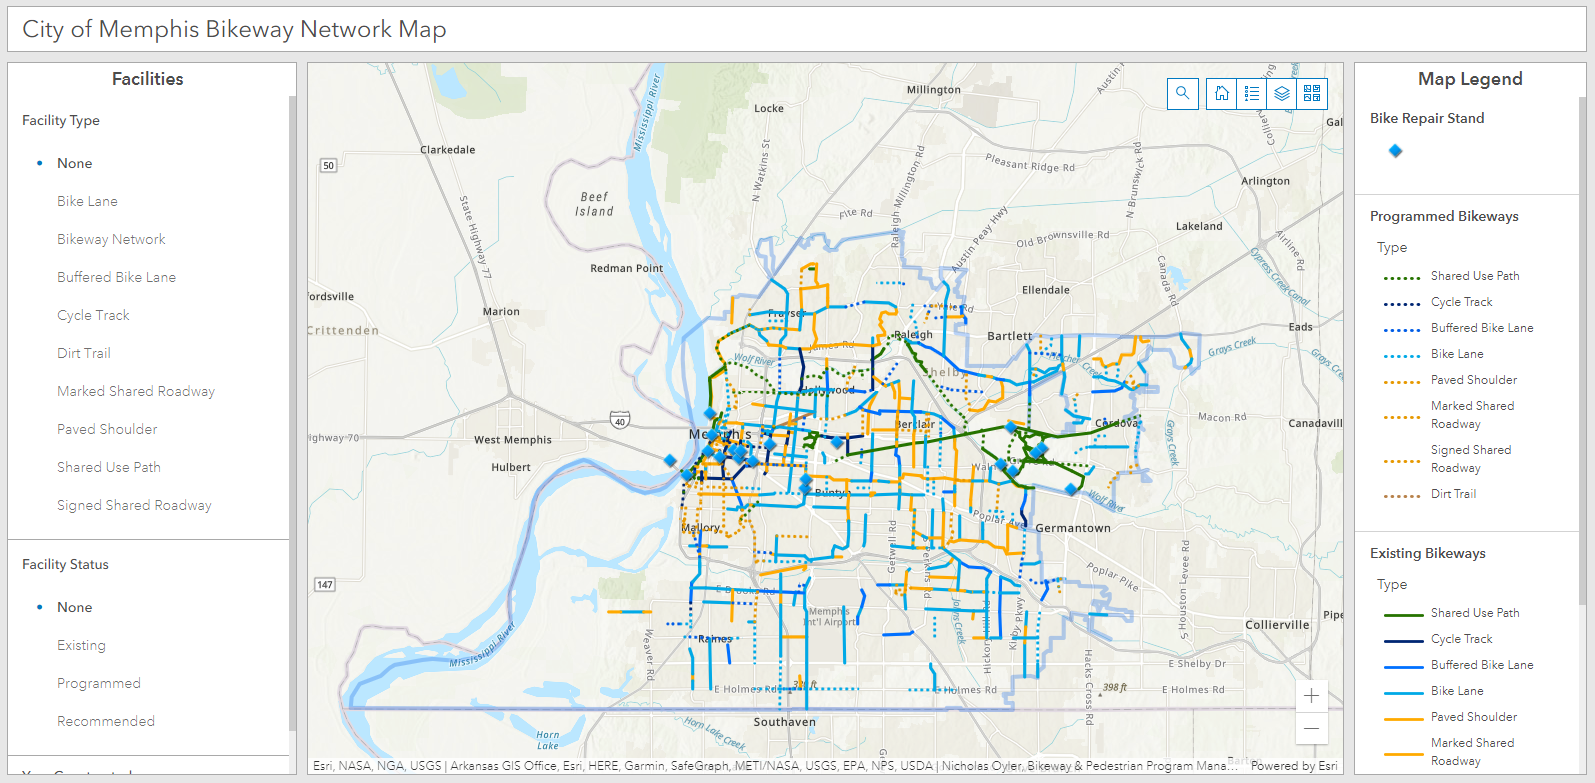 clicking on image directs user to Bikeway Network Map application